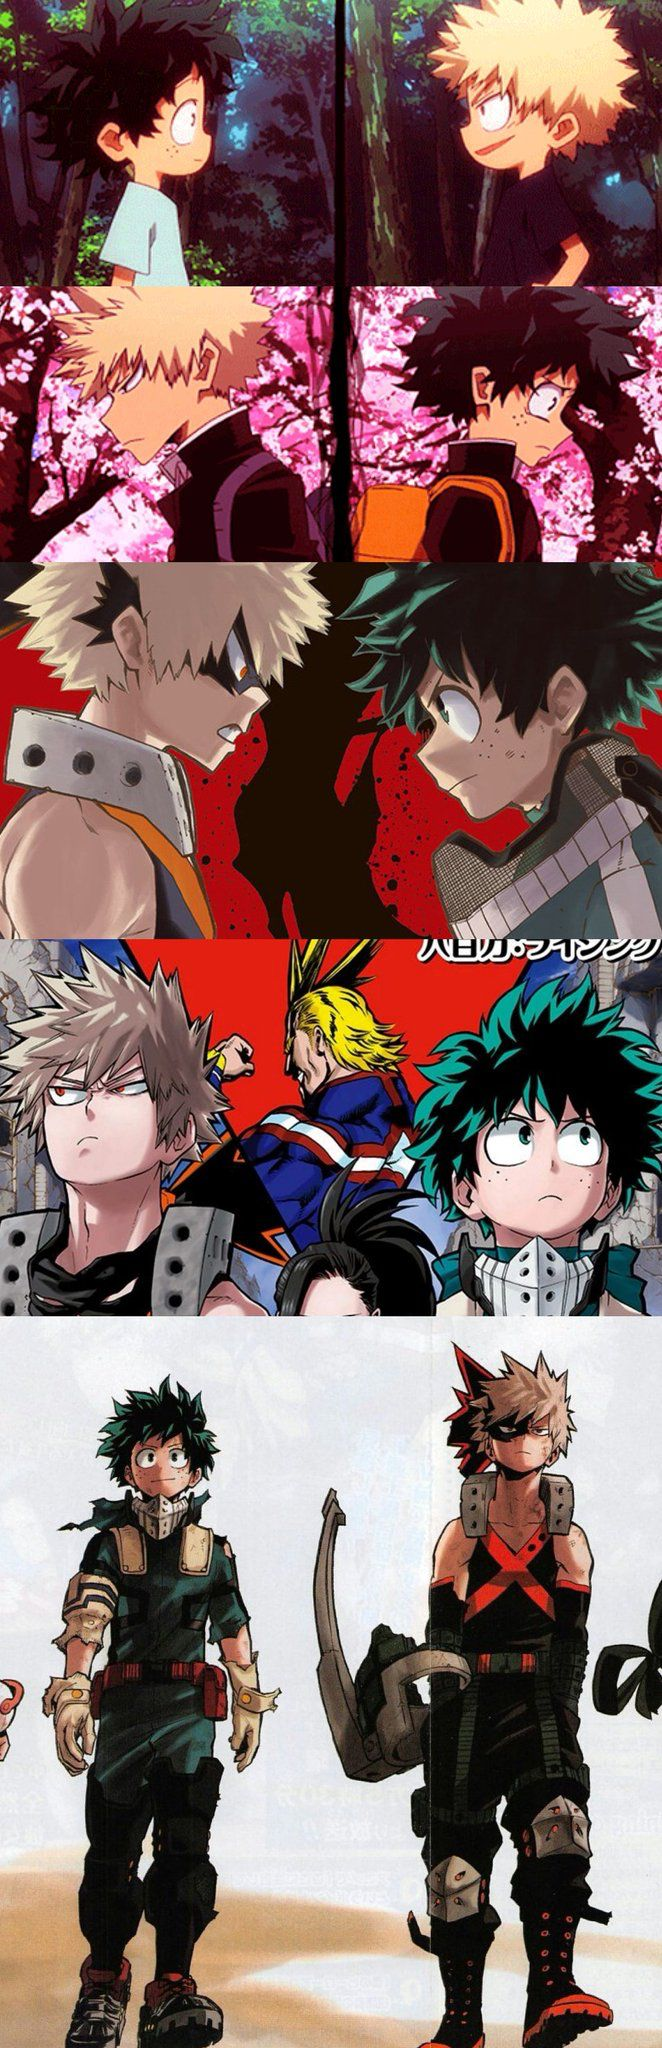 best images about boku no hero academia on pinterest posts